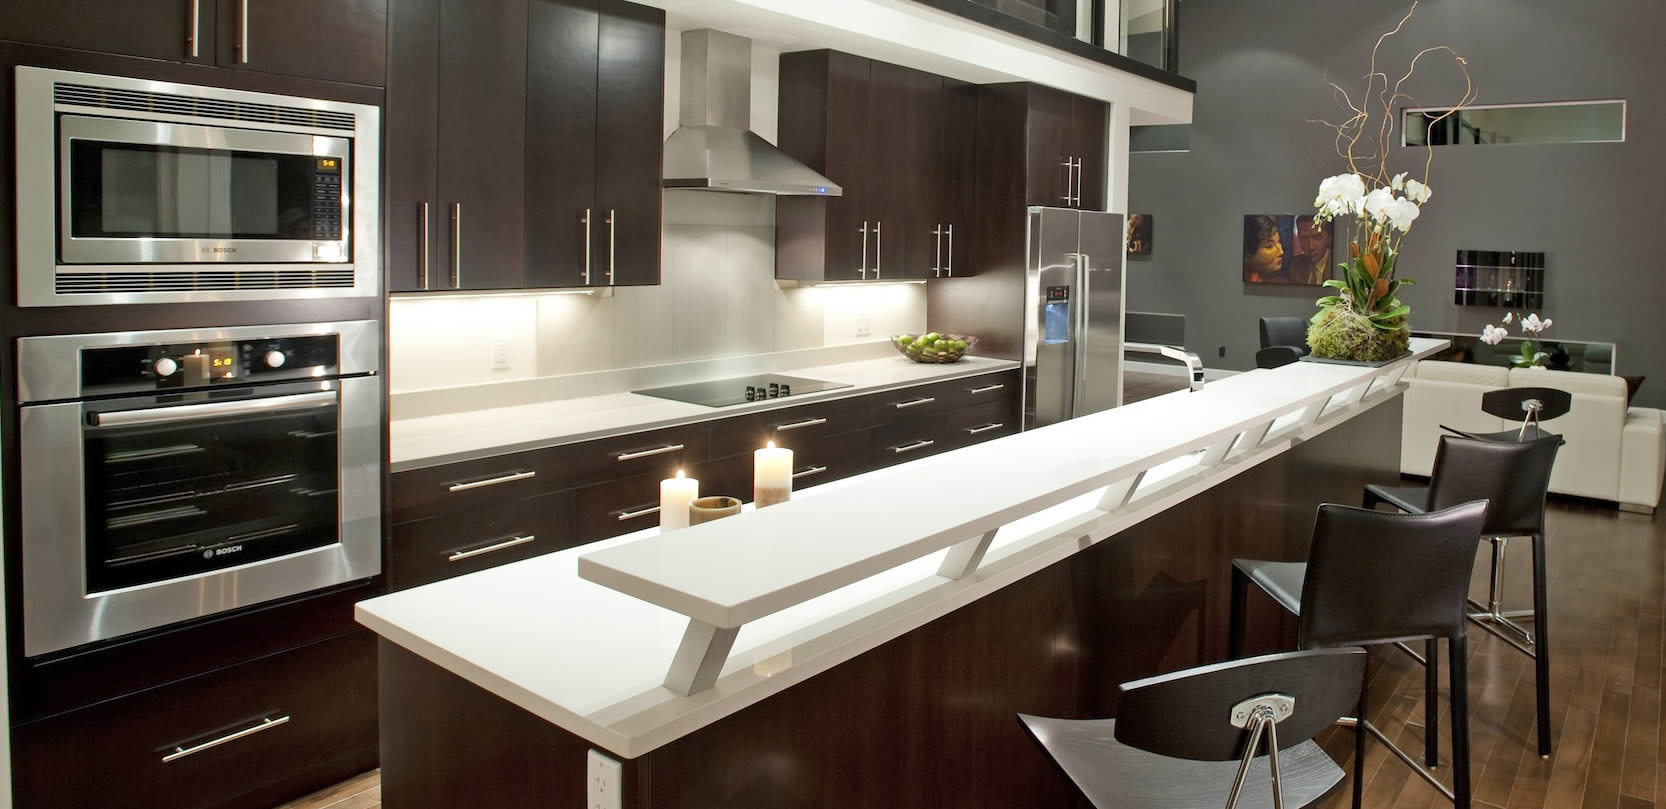 Dove what's so cool about kitchen cabinets? Kitchen Cabinet Makers Victoria Bc • Patio Ideas